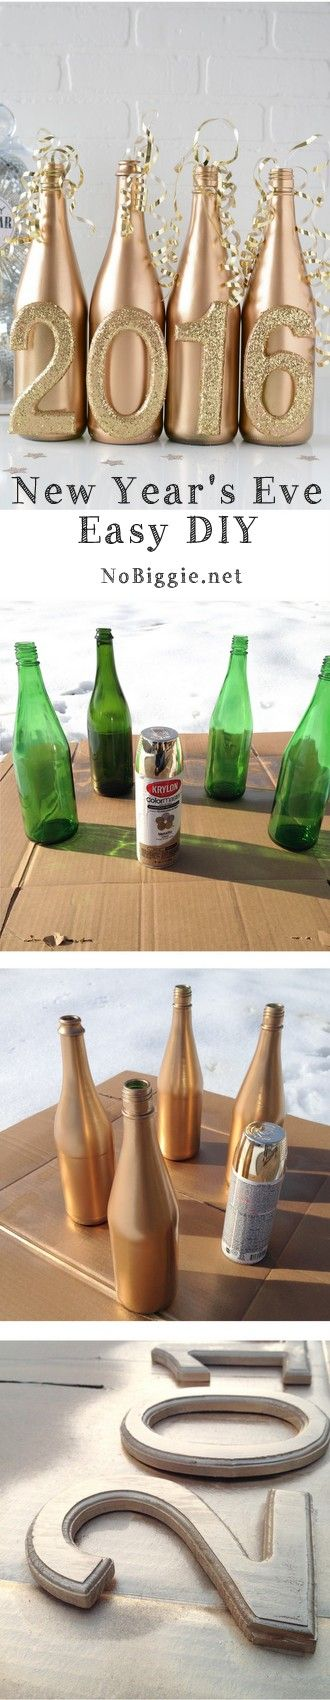 Decorative Bottles : Easy New Year's Eve DIY decor ...